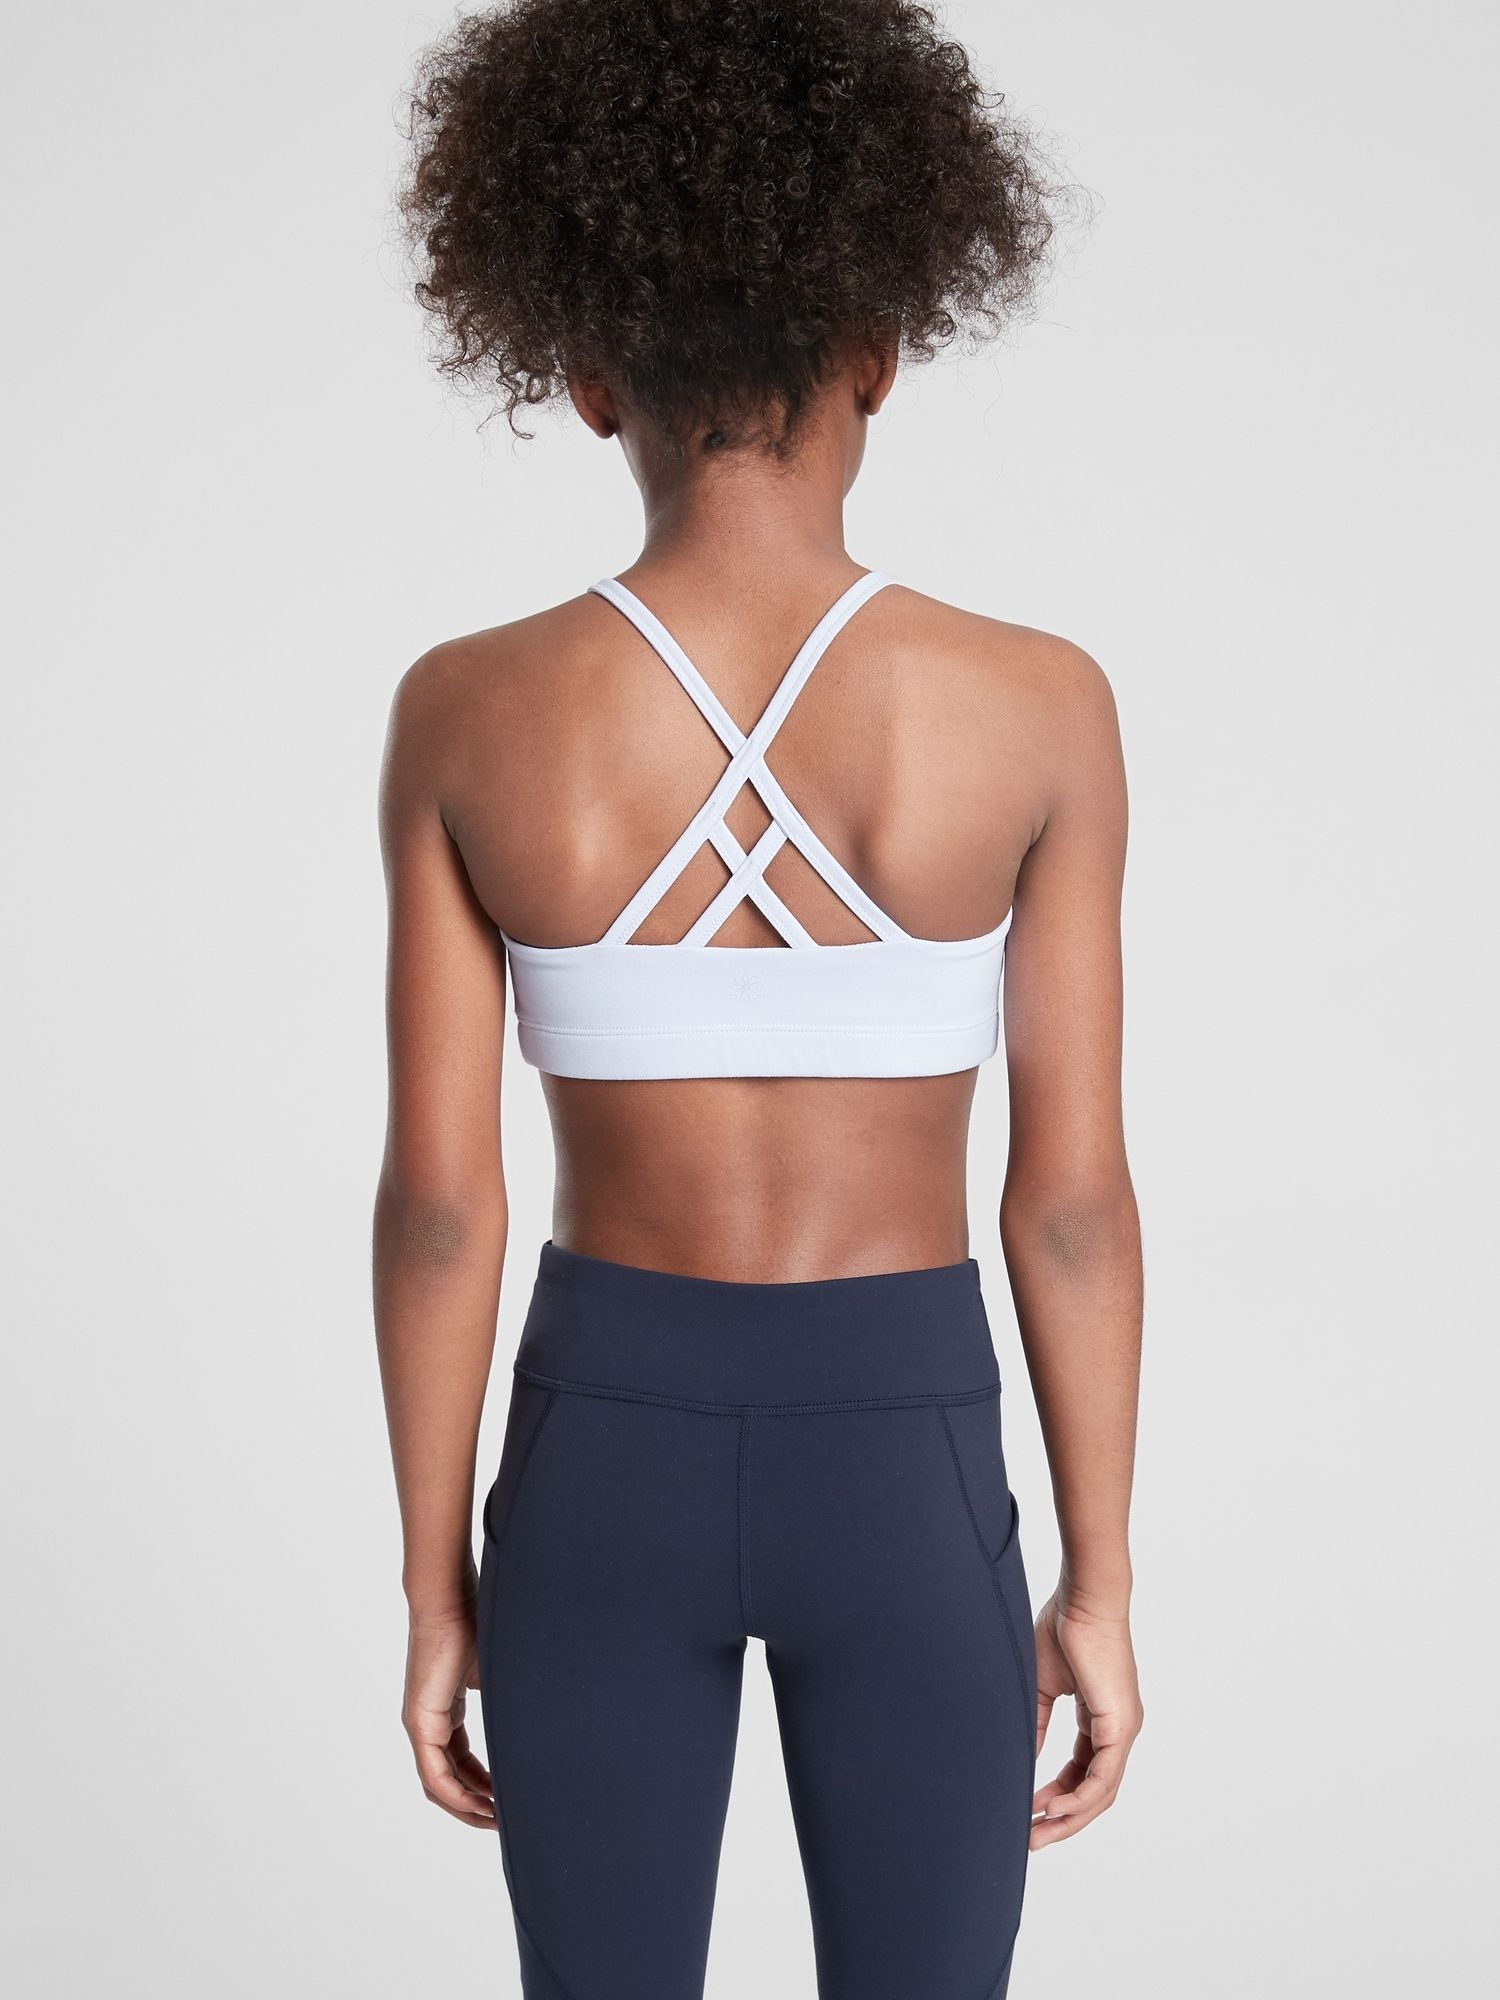 Athleta Girl Got Your Back Bra | Athleta